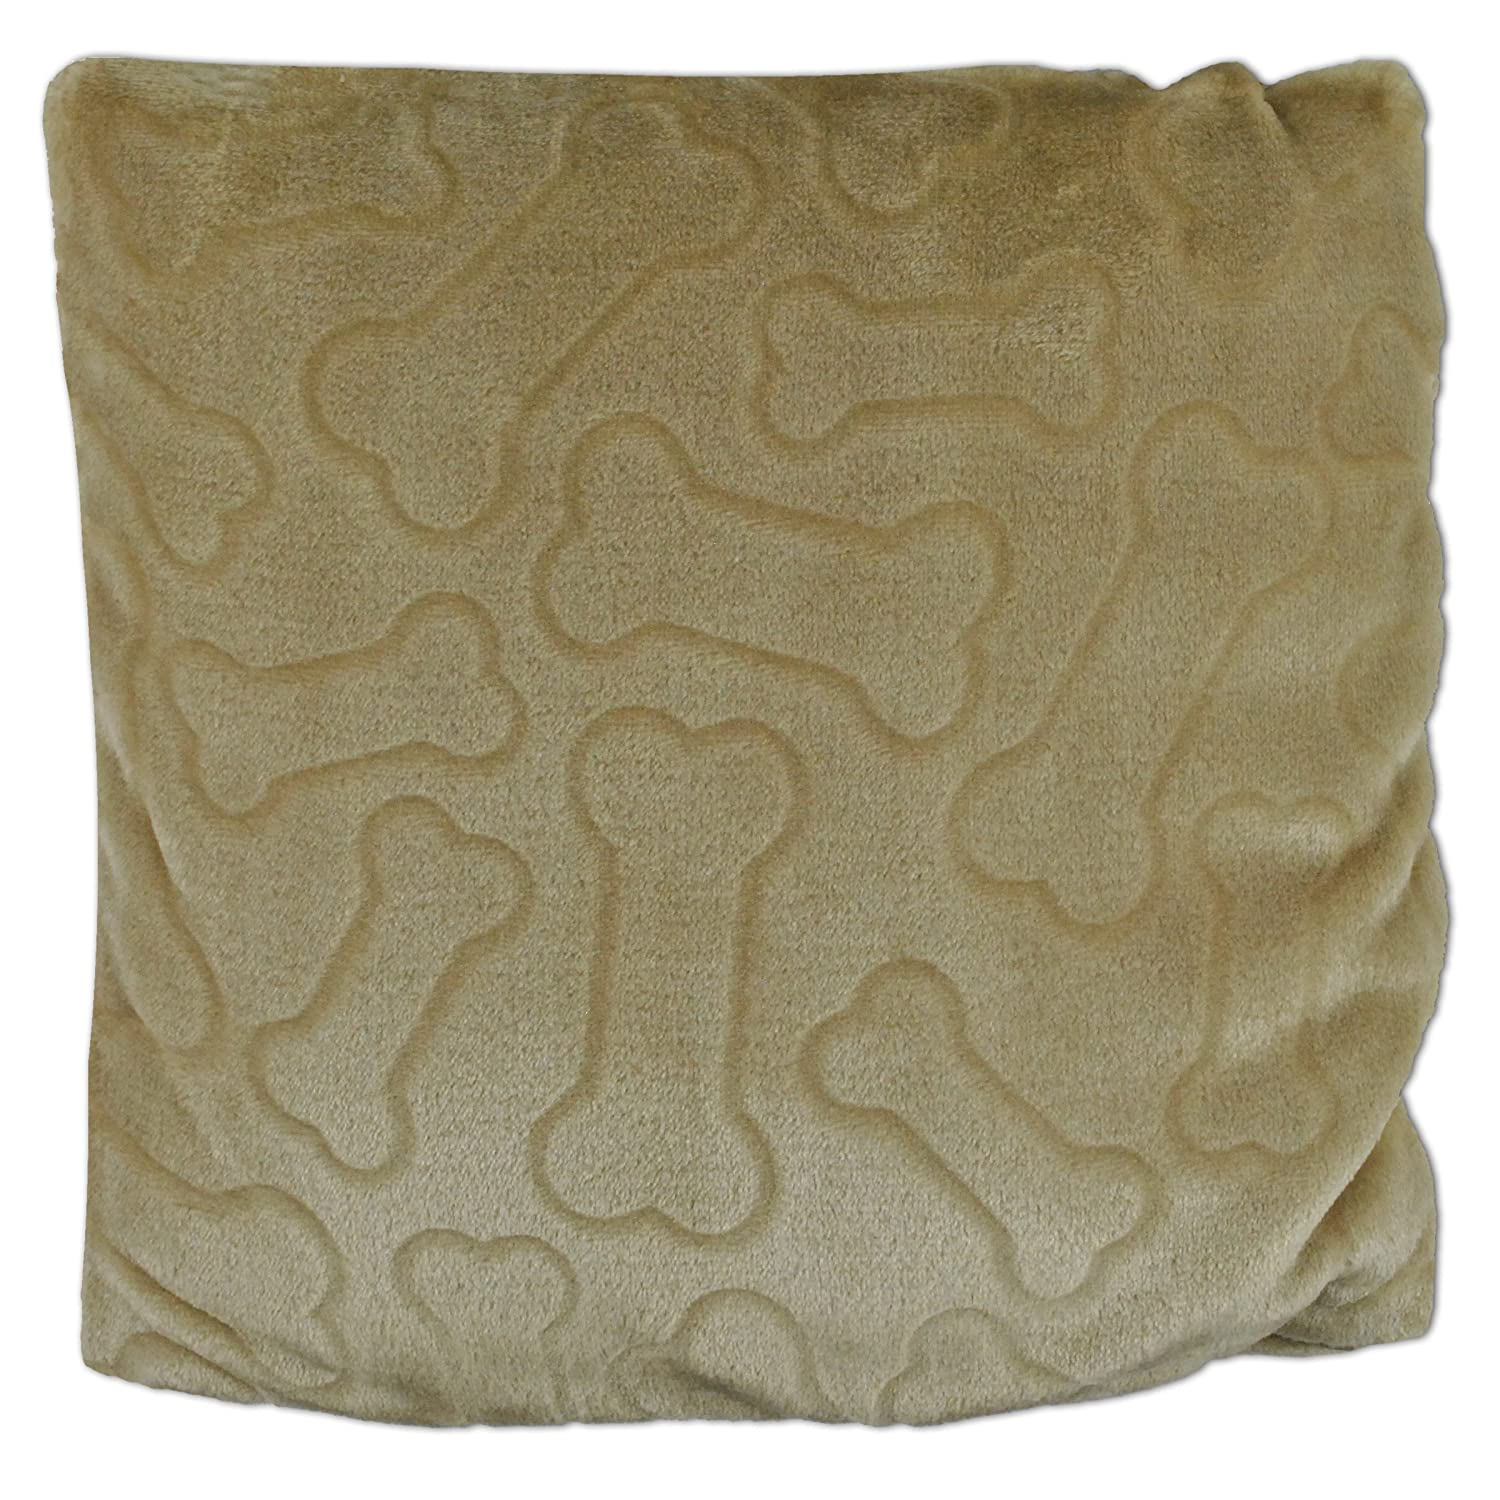 DII Bone Dry Medium Pet Pllow Blanket for Dogs and Cats, 50x60 , Warm, Soft and Plush for Couch, Car, Trunk, Cage, Kennel, Dog House-Taupe